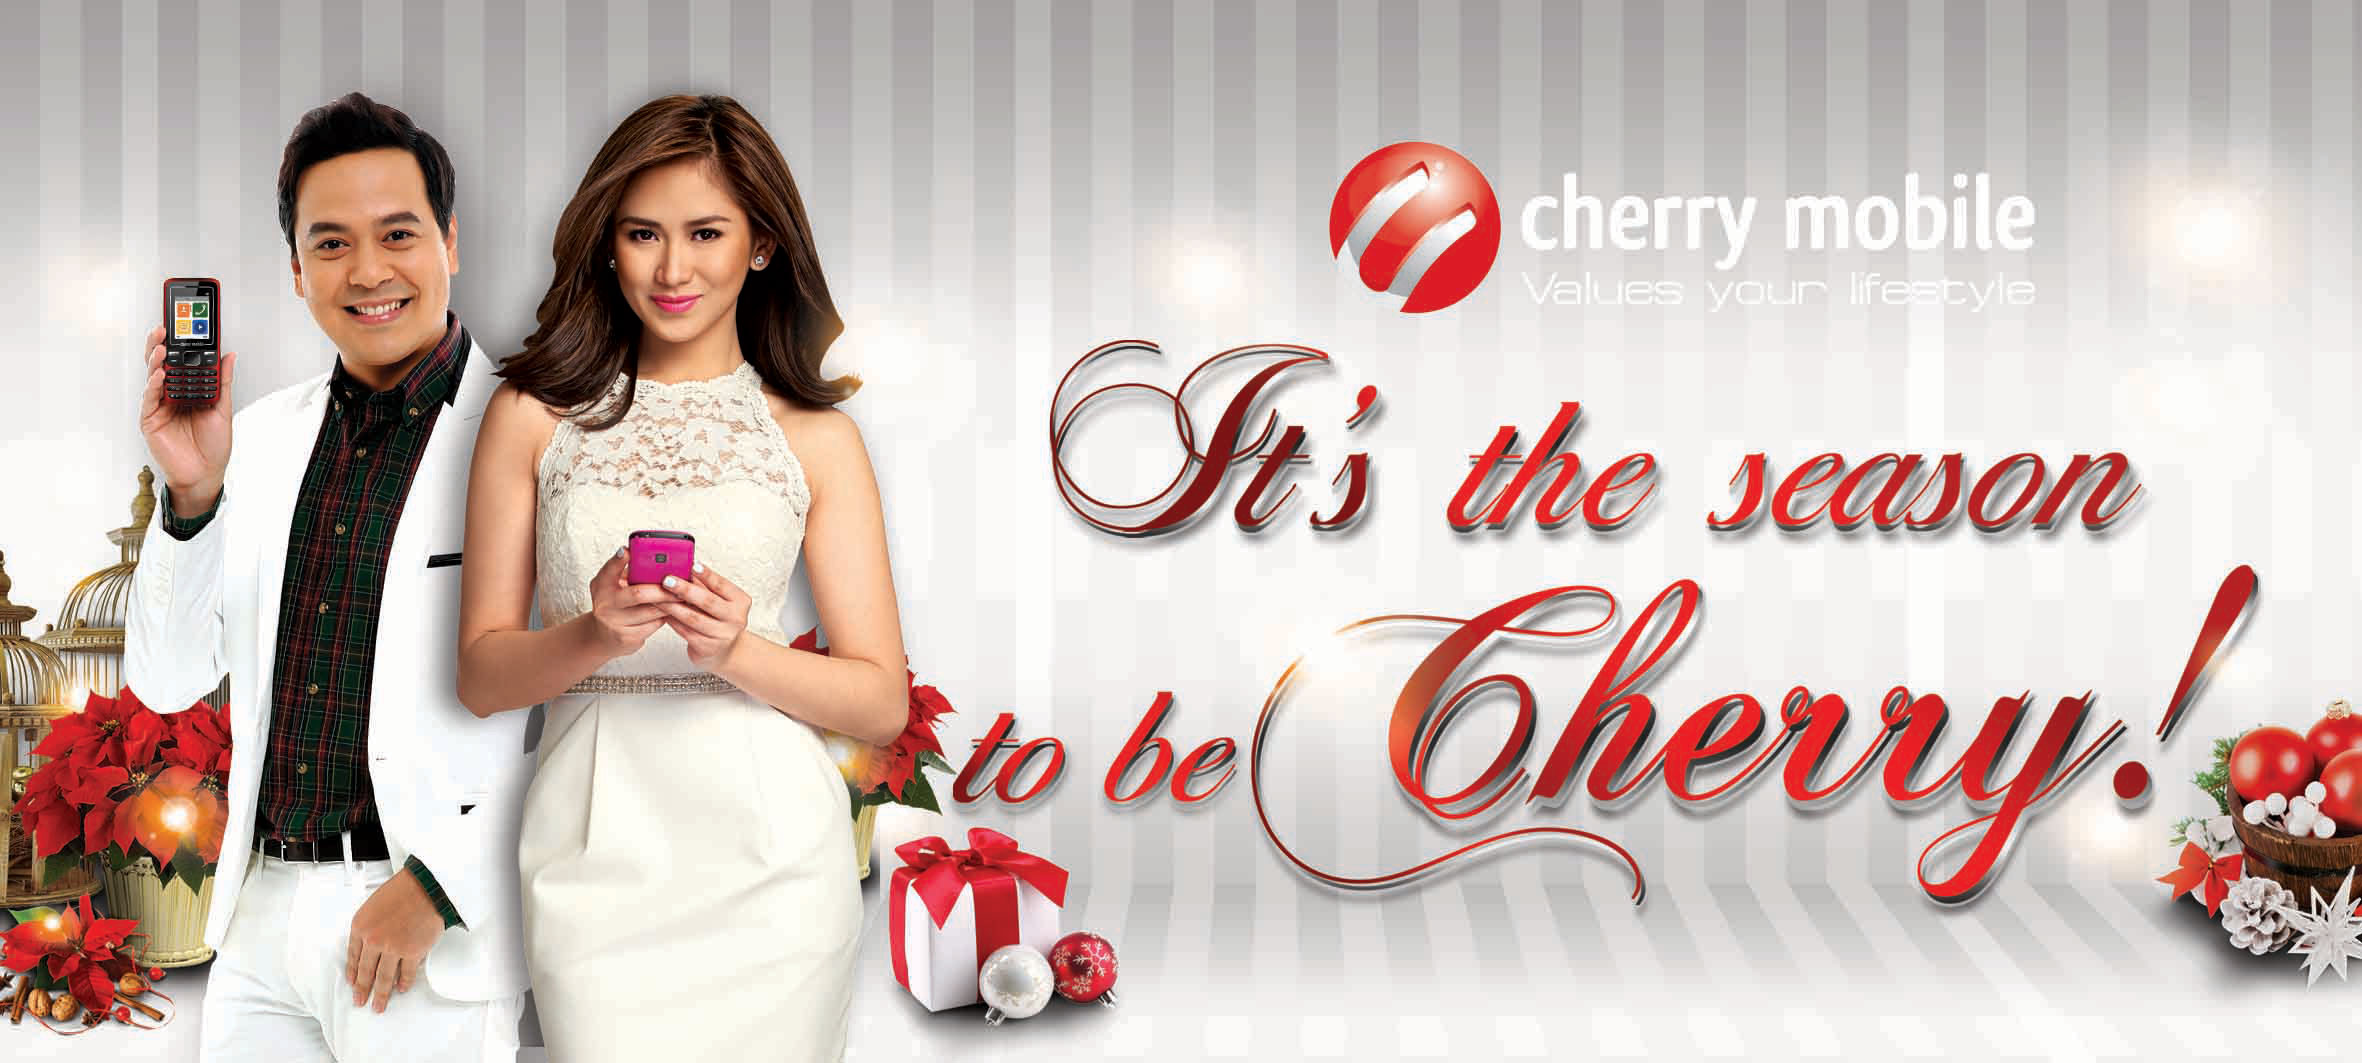 JohnLloyd Sarah Feature - The State of Cherry Mobile